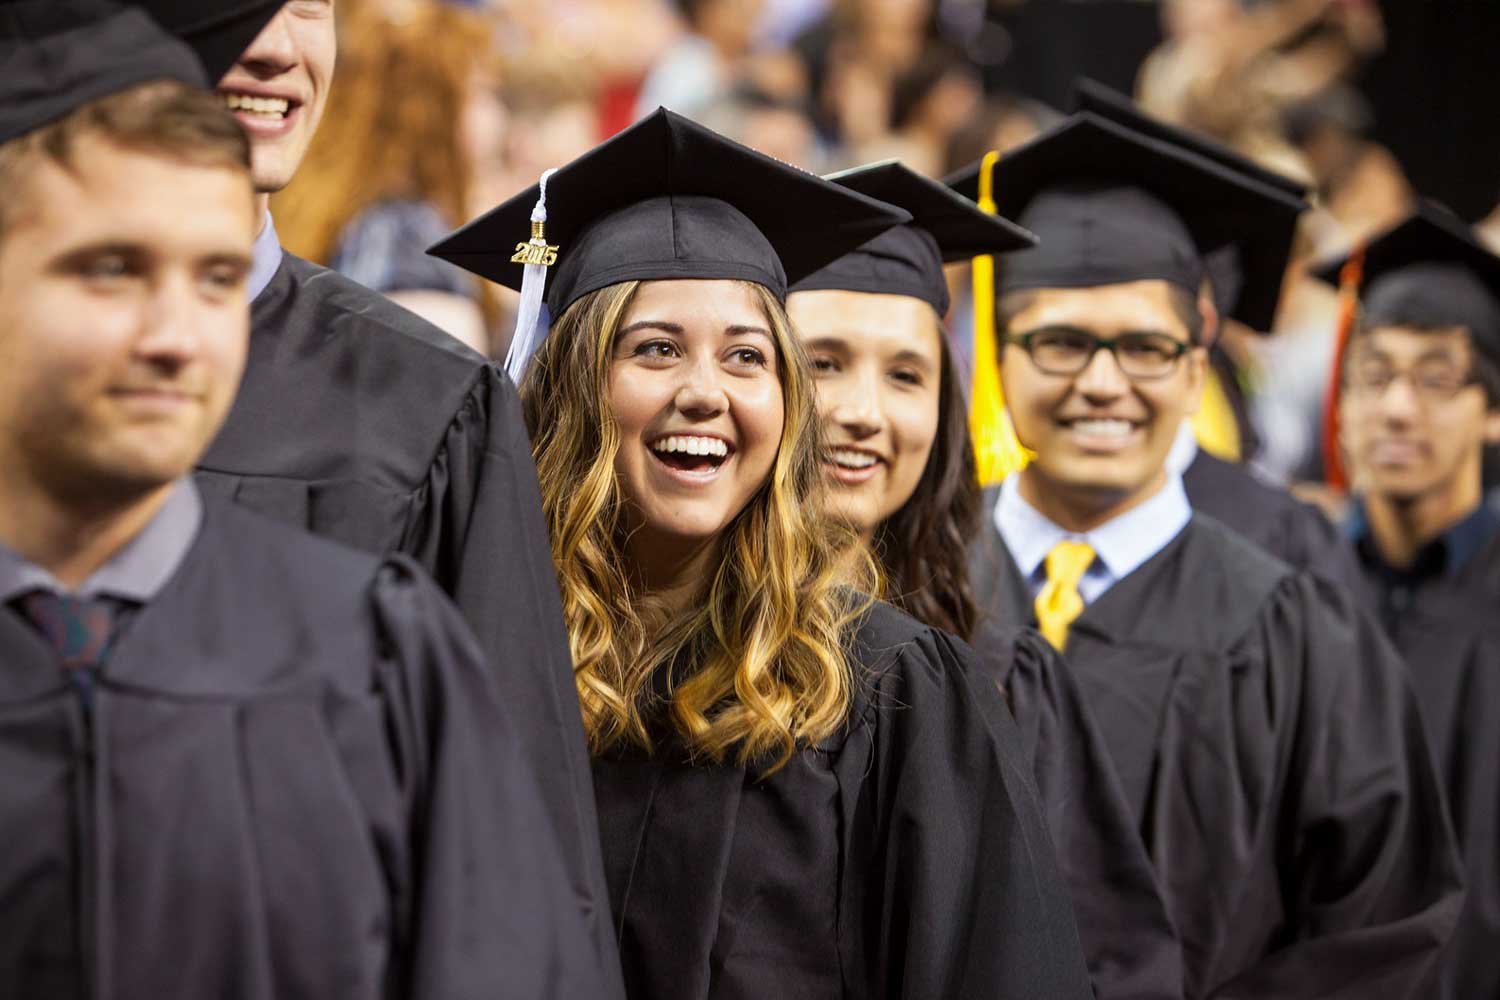 Recent grads at Commencement 2015